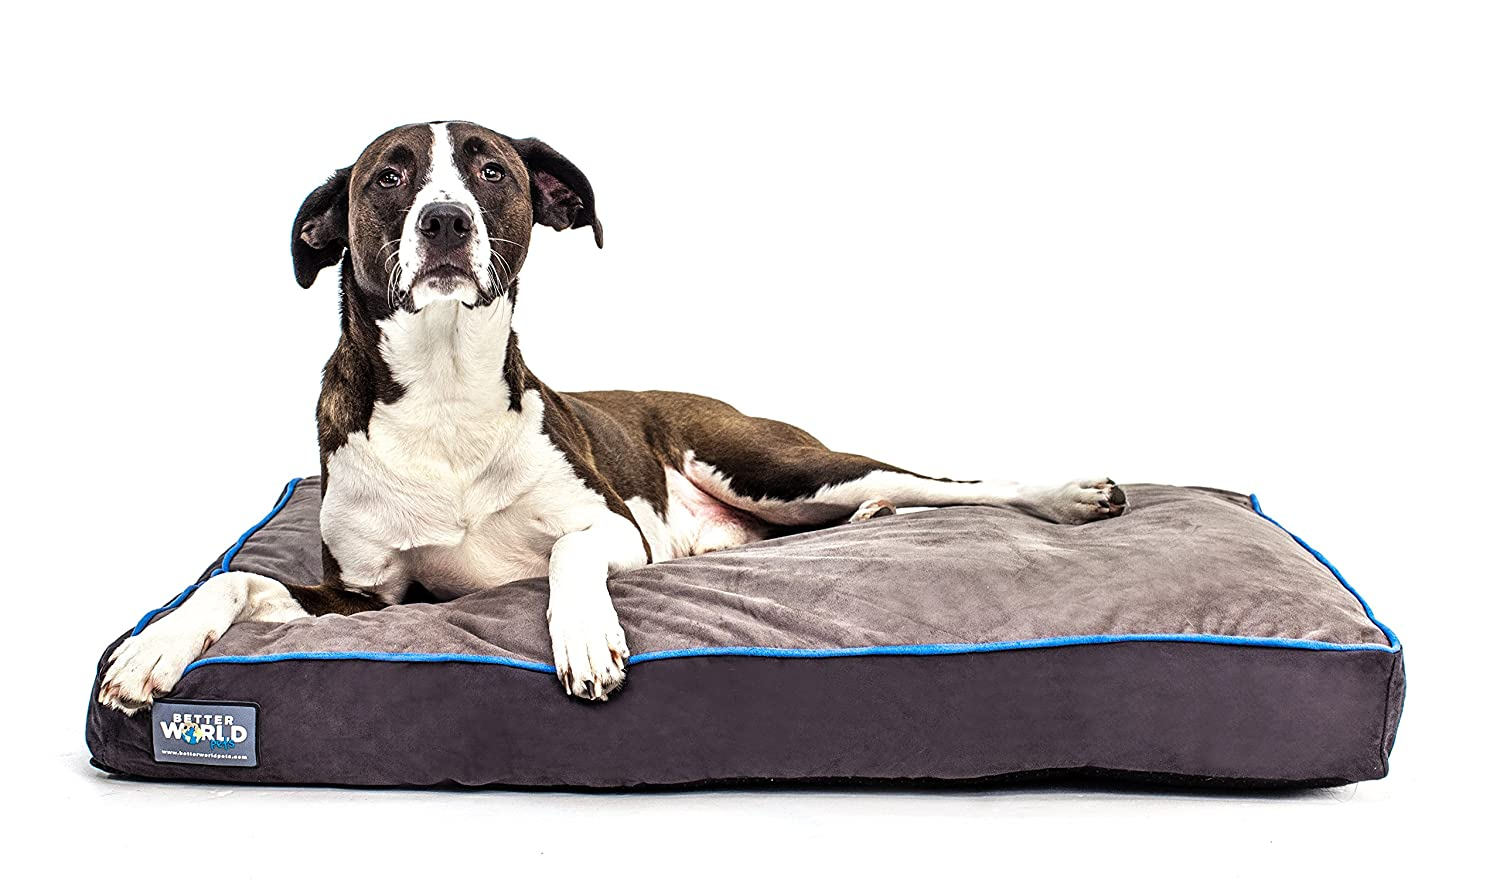 Extra large orthopedic dog beds best price - Amazon Com Better World Pets 5 Inch Thick Waterproof Orthopedic Memory Foam Dog Bed With 180 Gsm Removable Washable Cover Medium 36 X 24 X 5 Dogs